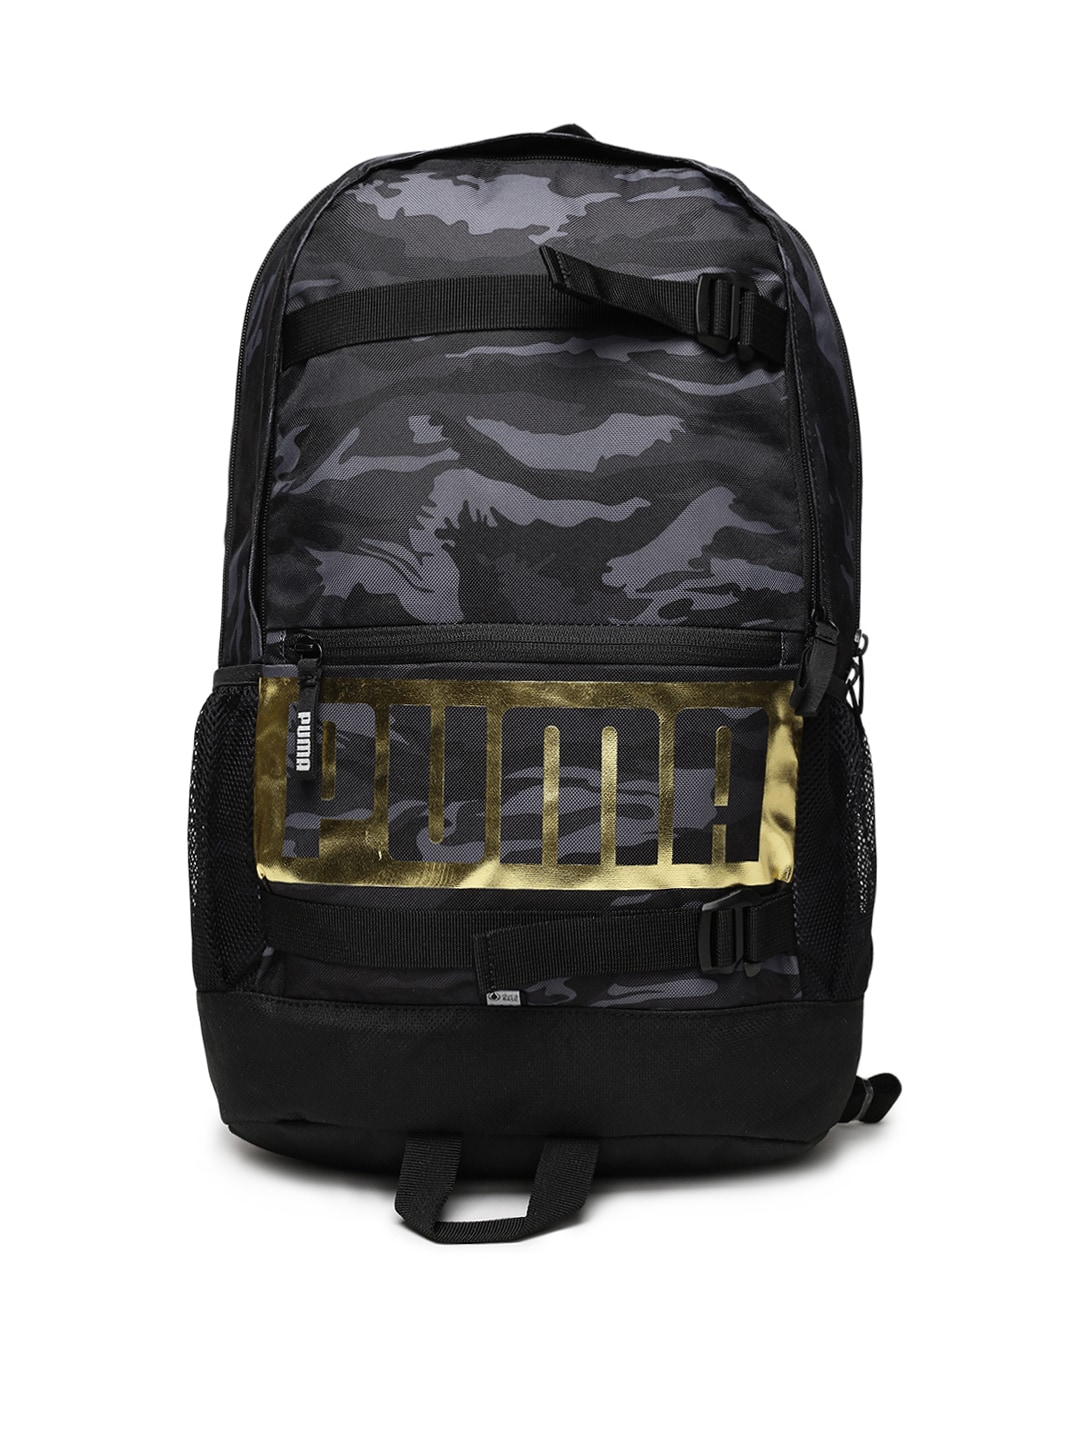 Mens Bags   Backpacks - Buy Bags   Backpacks for Men Online d5353f69bdc0a